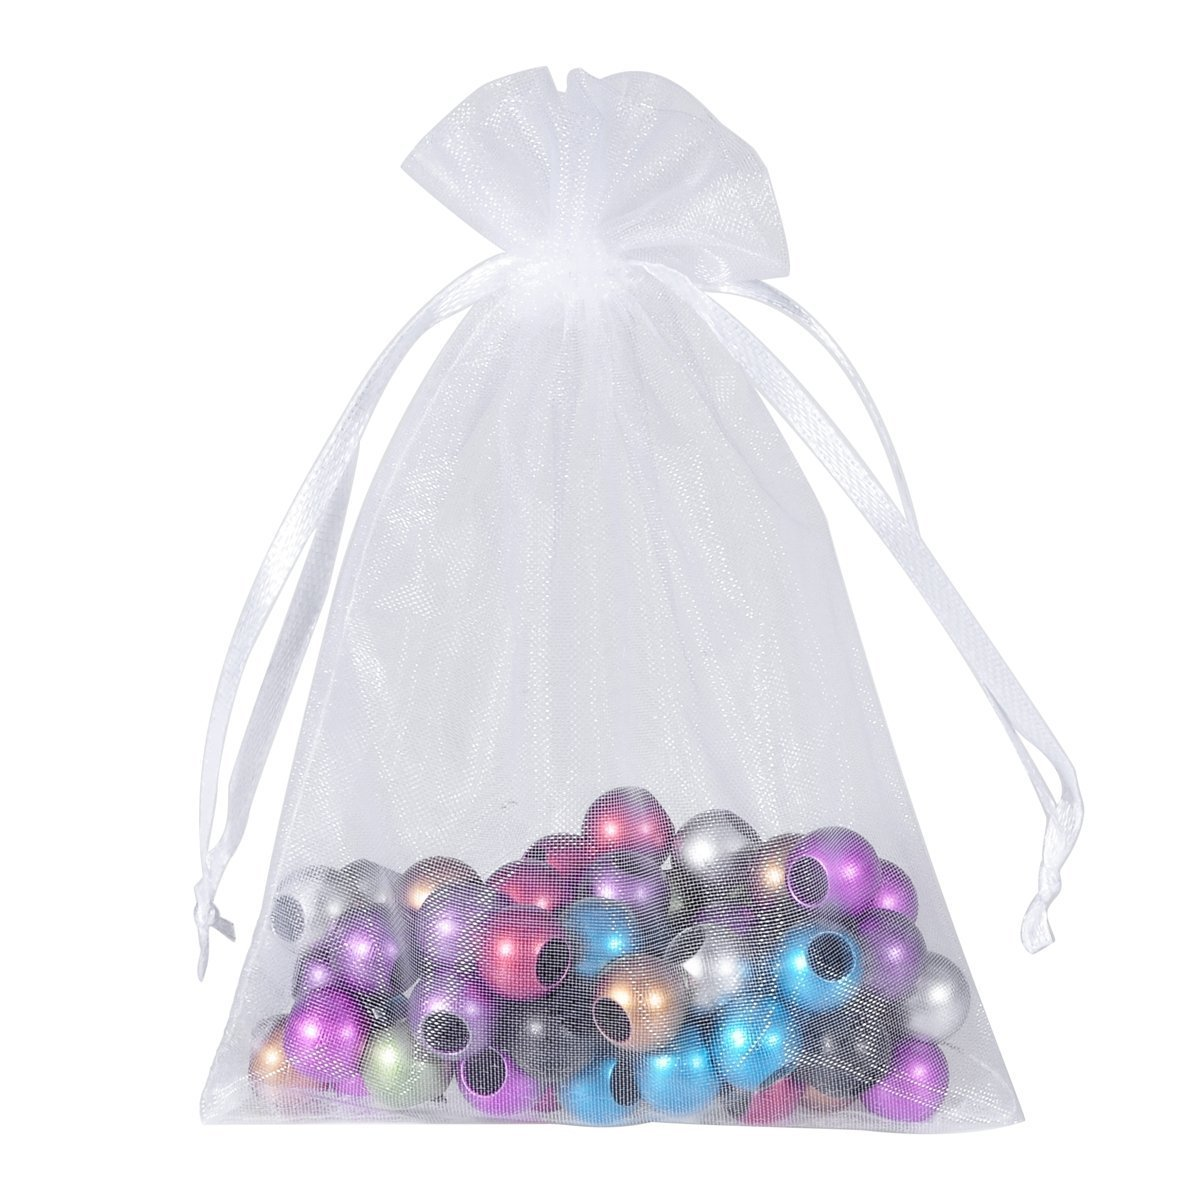 50 Pieces Drawstring Organza Bag Jewelry Bag Baby Shower Party Wedding Favor Package White 13 * 16cm DierCosy